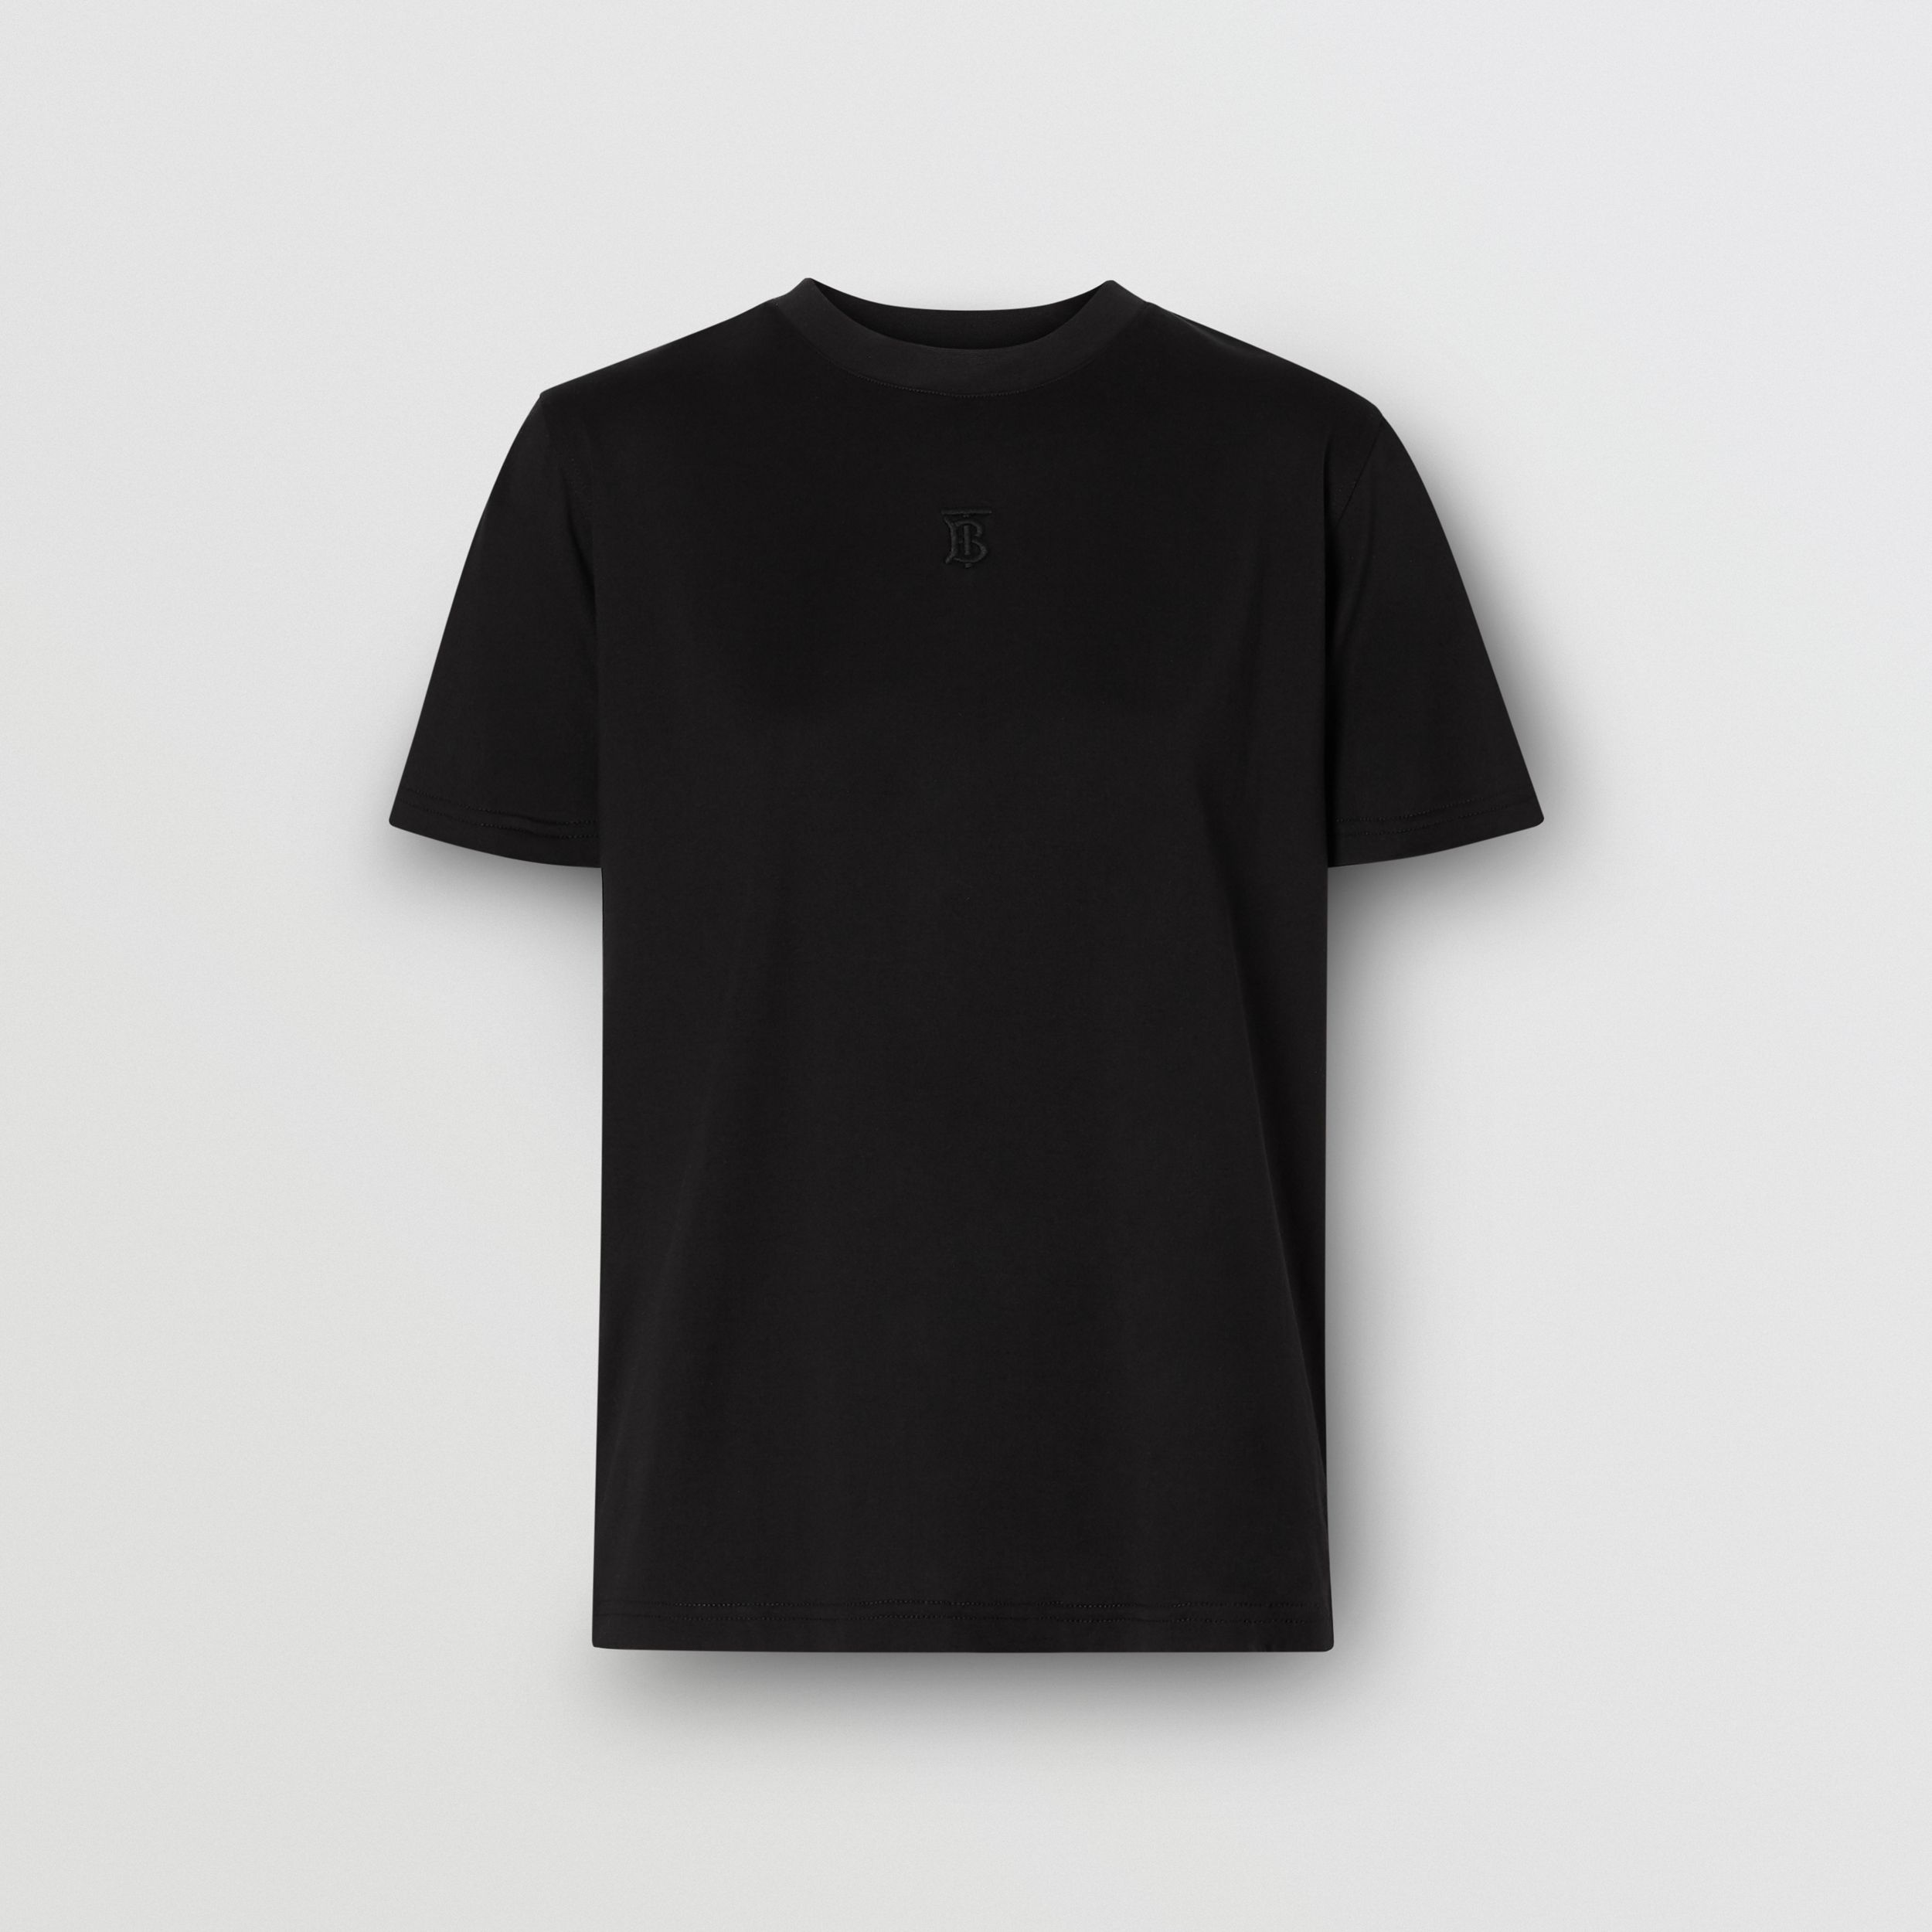 Monogram Motif Cotton T-shirt in Black - Women | Burberry Australia - 4